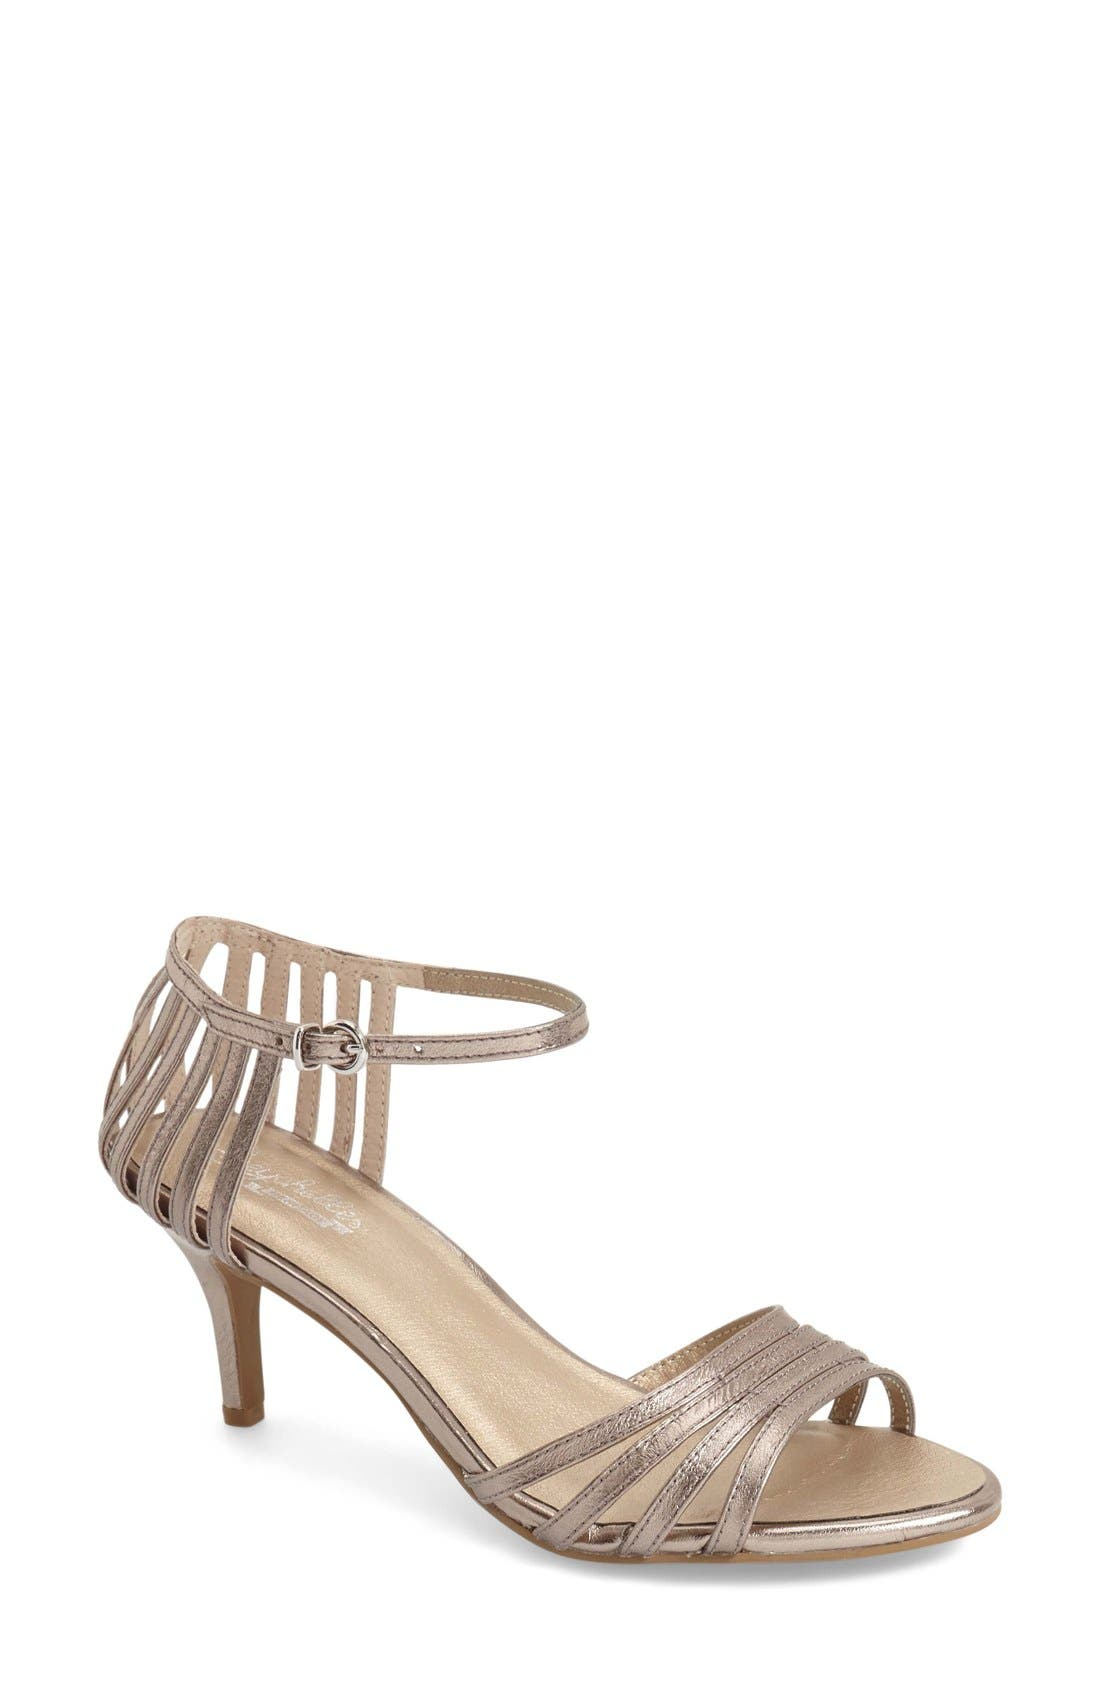 'Song and Dance' Ankle Strap Pump,                         Main,                         color,